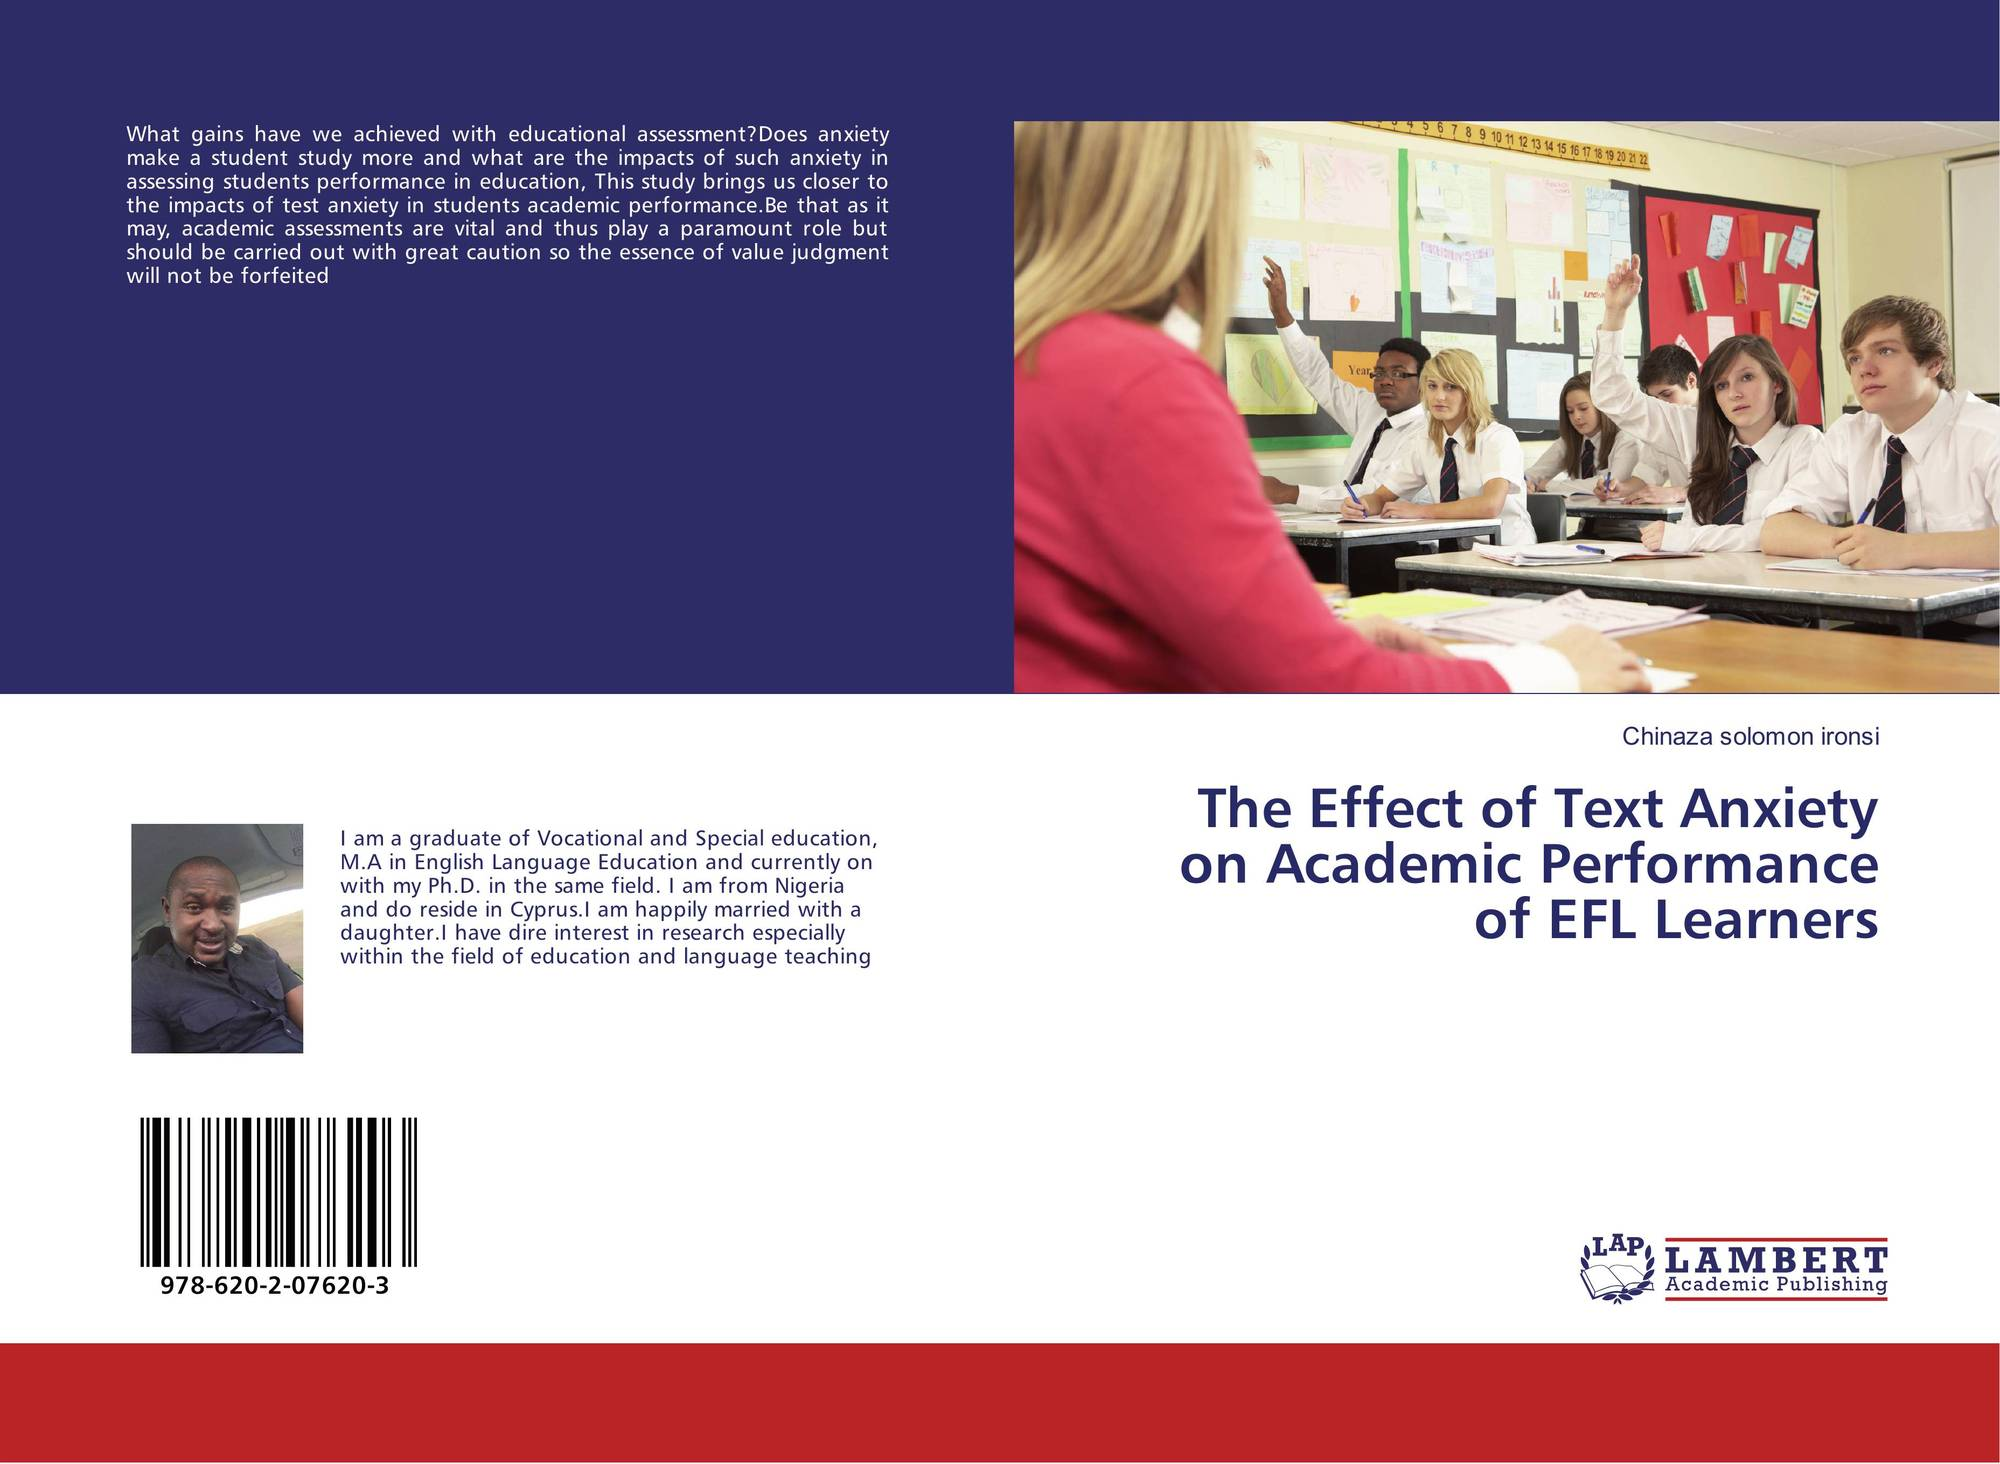 """the effects of texting on literary Plester and colleagues (2008) found that texting does not seem to be associated with negative literacy outcomes for children of 11-12 in another study, plester and collegues (2009) found a correlation between children 10-12 who used """"textisms"""" (words that are abbreviated in texts) and reading ability and it was positive."""